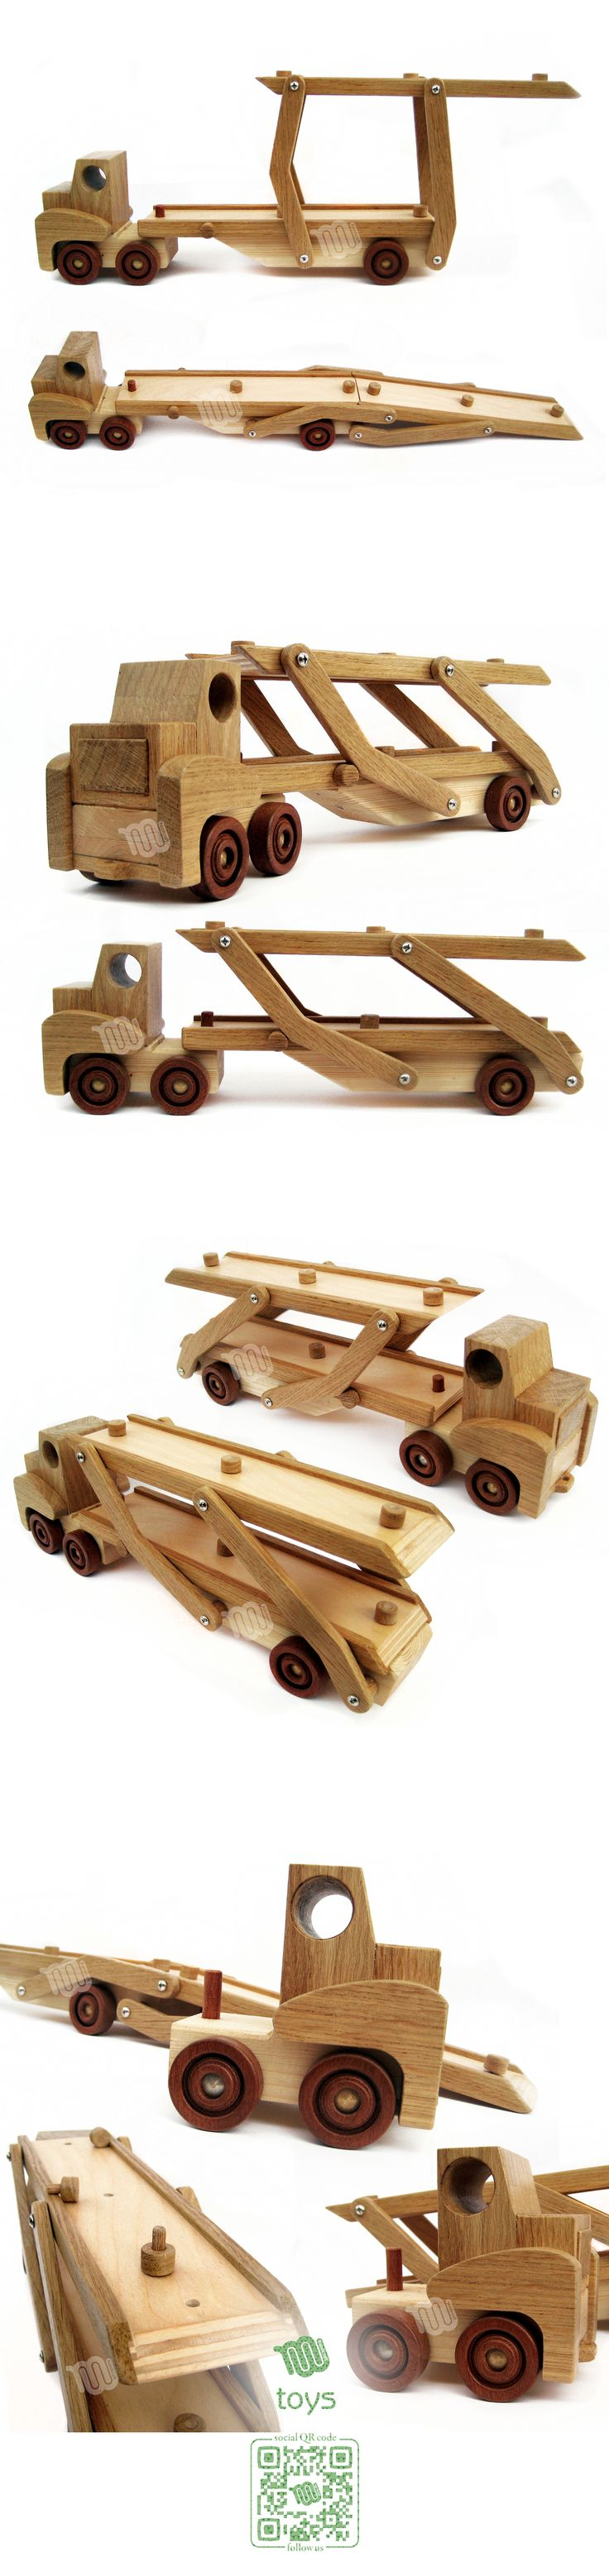 Car carrier trailer - wooden toy